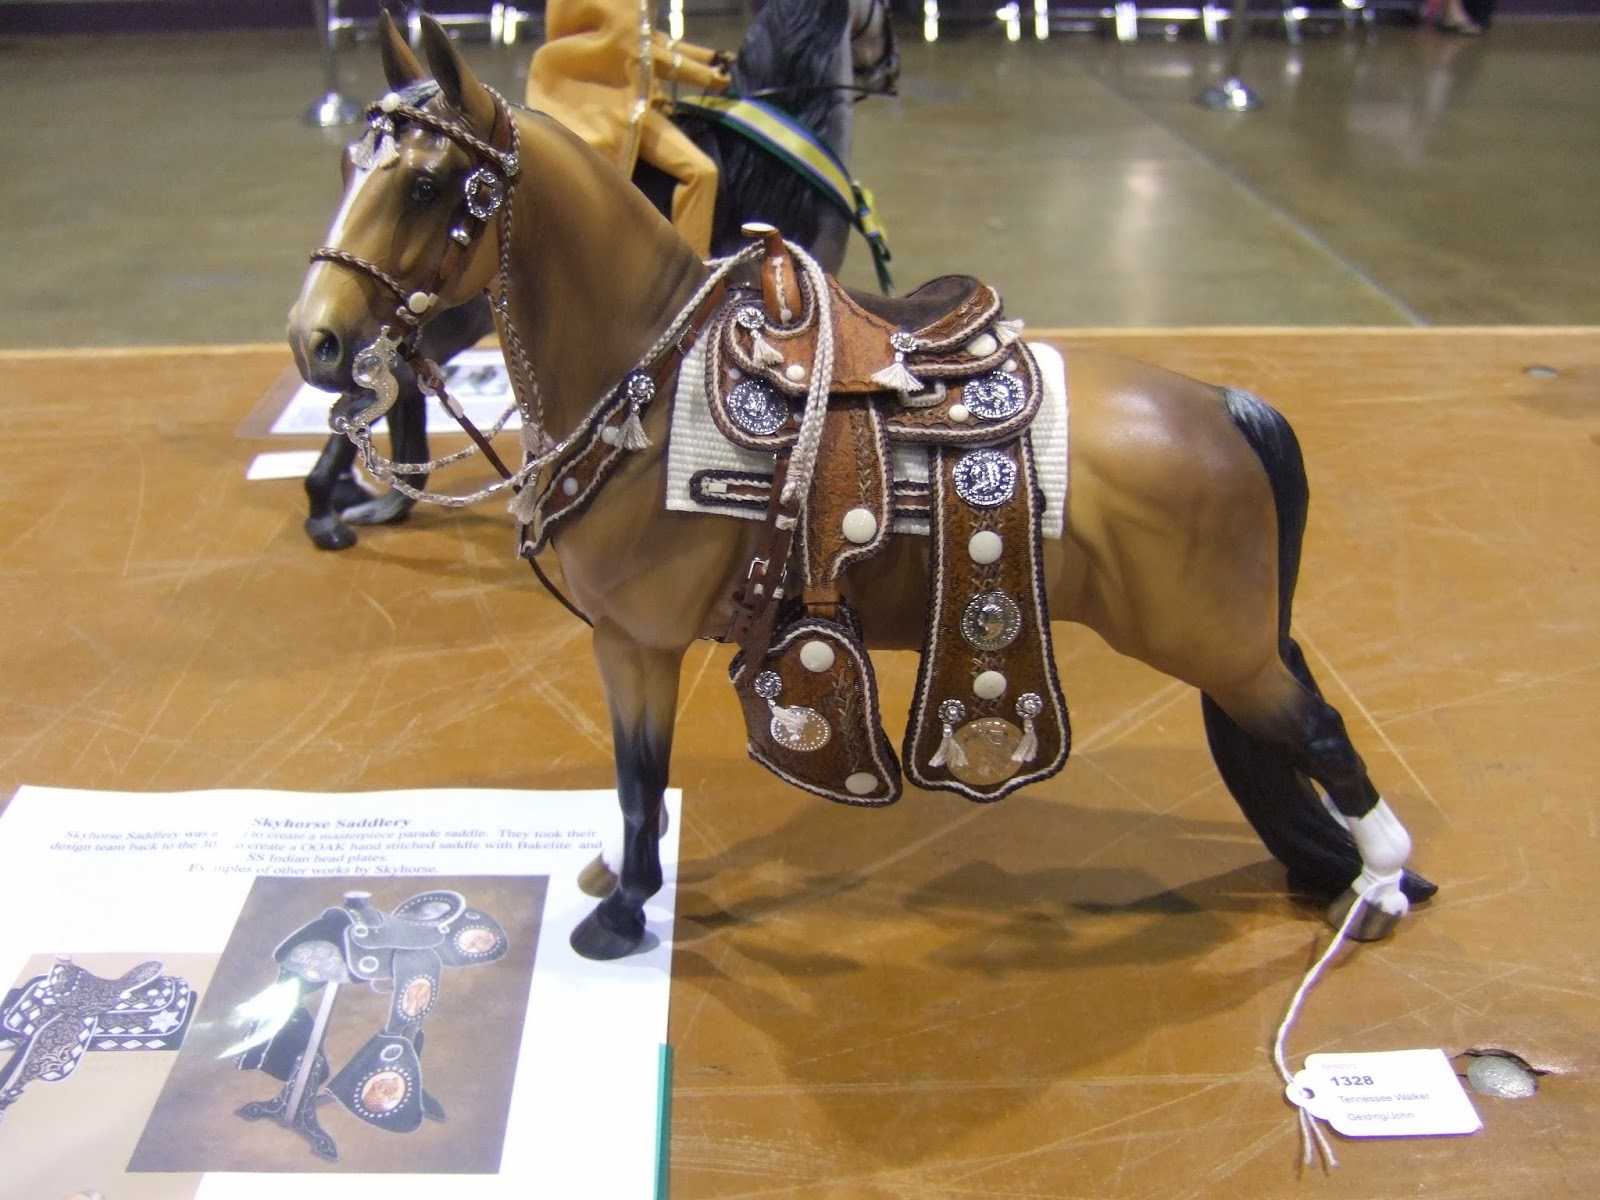 Marilyn's Hobby : Model Horse Western Tack, Showing and Judging